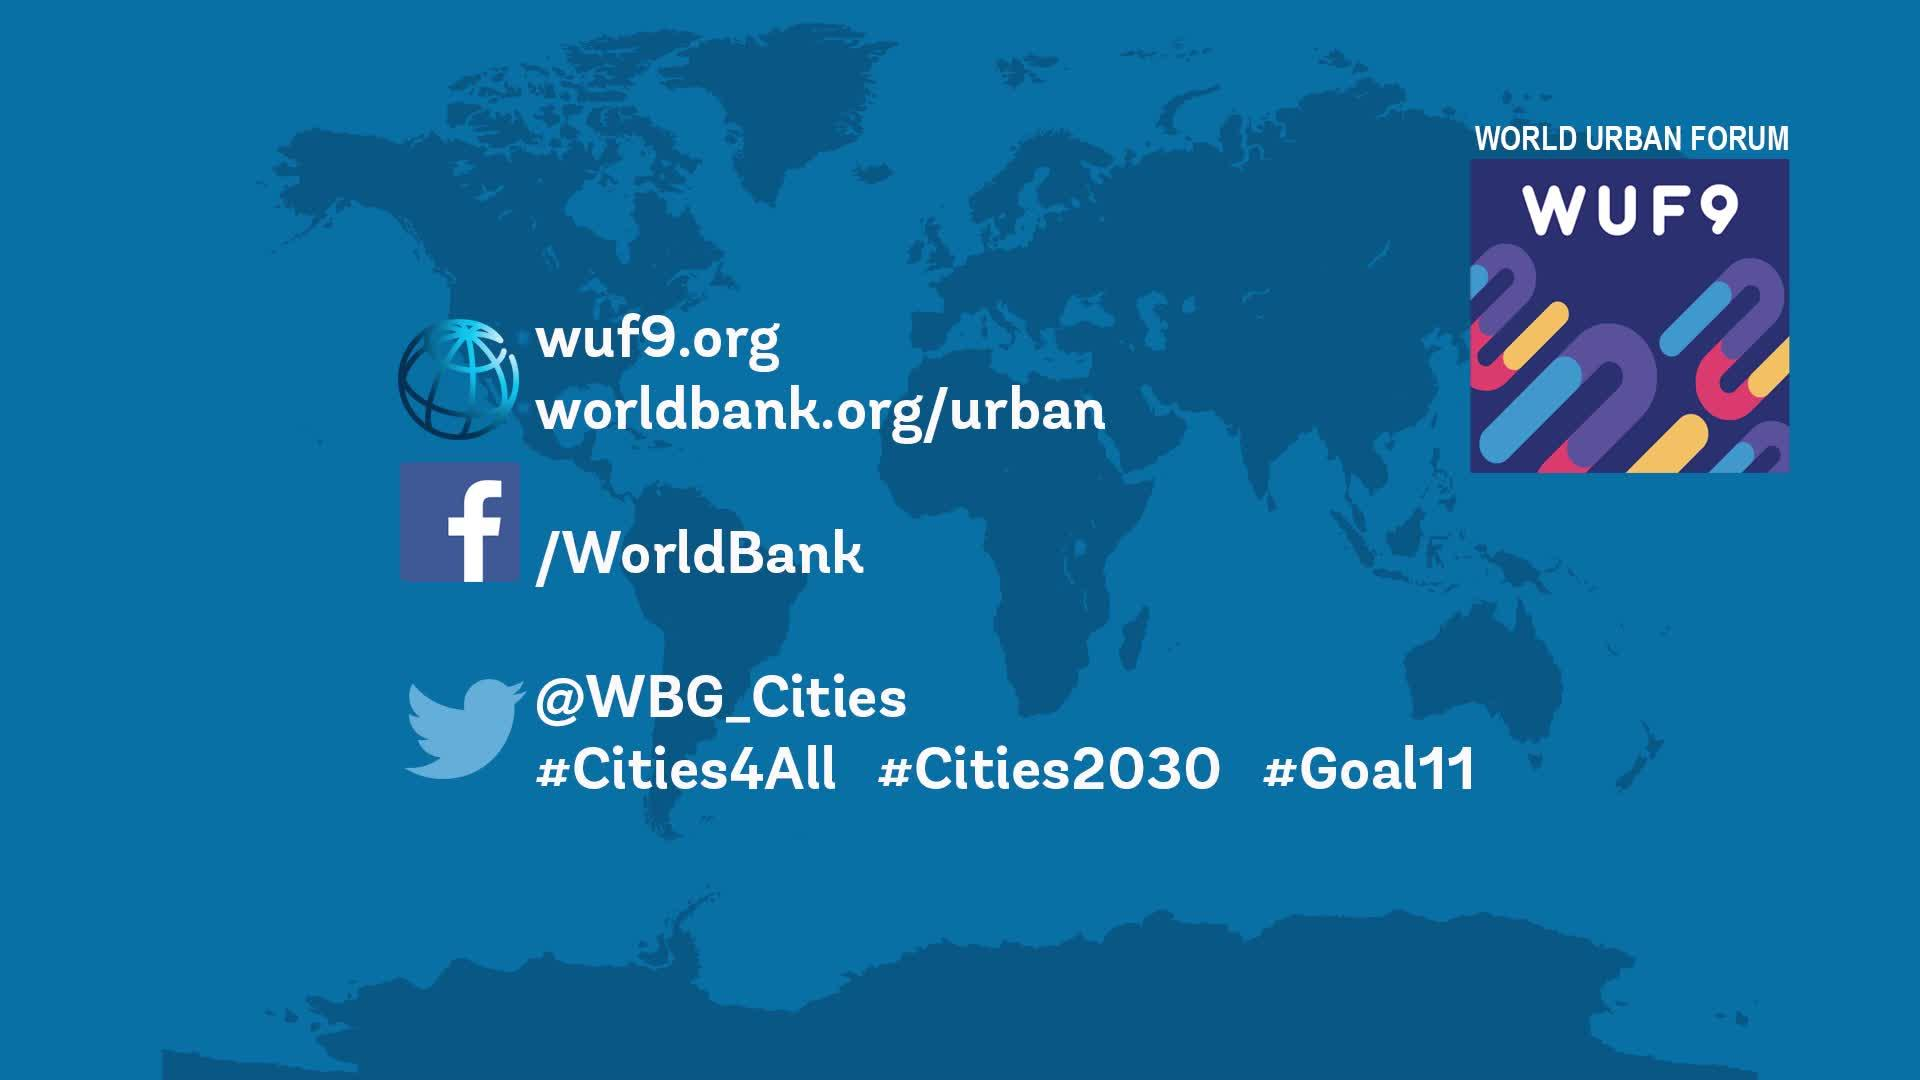 Follow the World Bank at the World Urban Forum! (Image: World Bank)